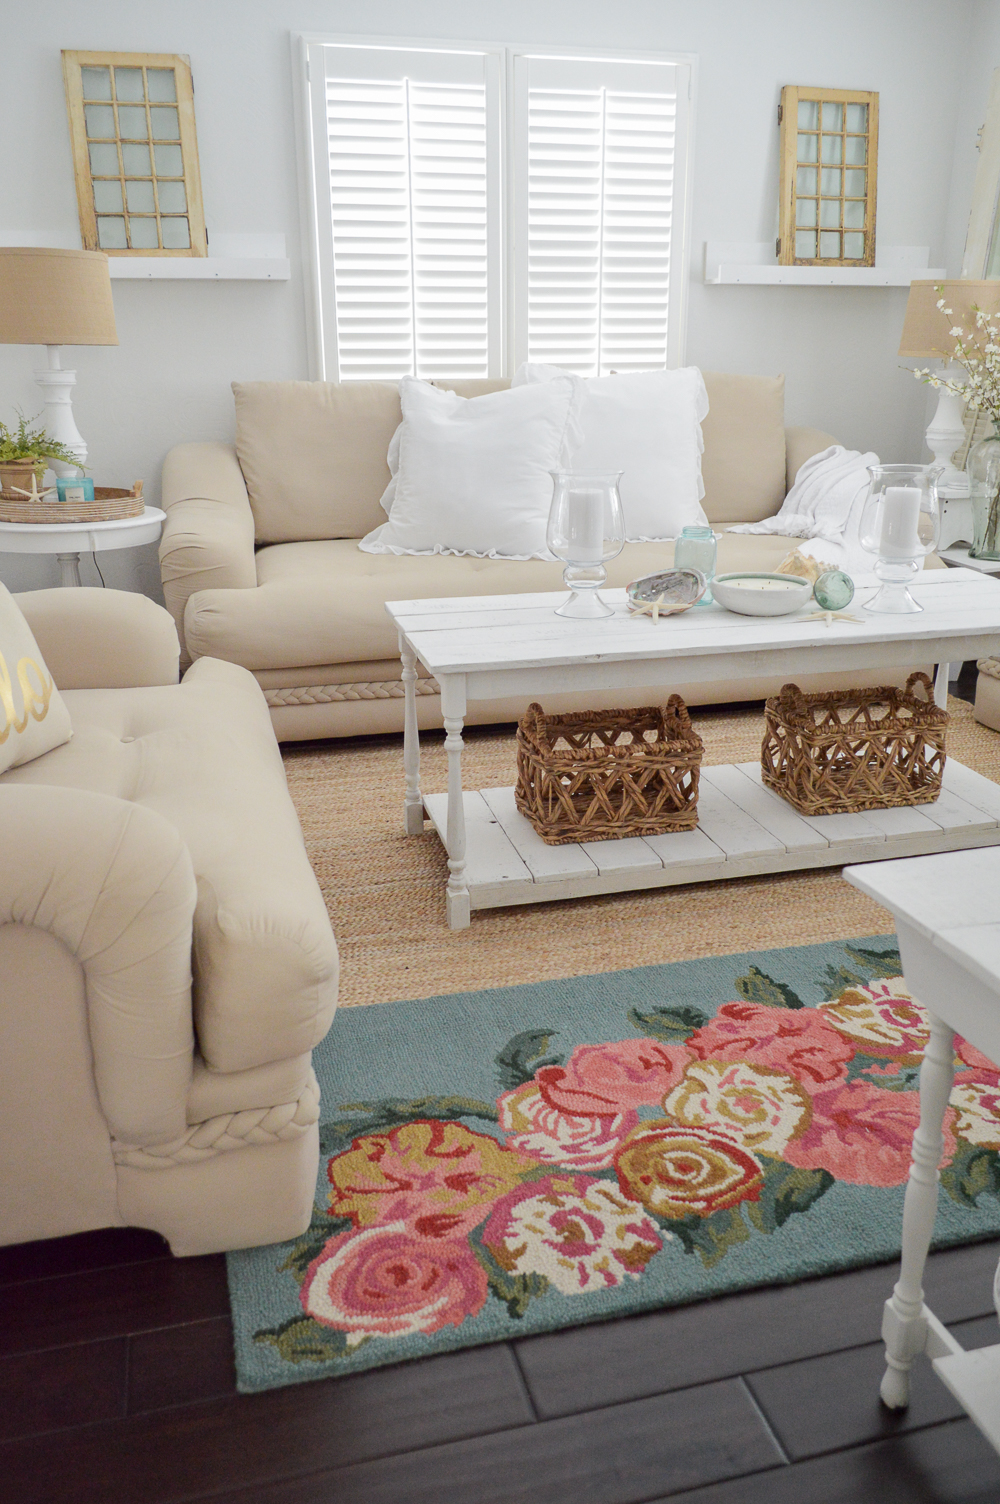 Soft, sandy neutral sofa and chair, with white furniture and wood floors. The floral layered rug adds color and interest to the space!